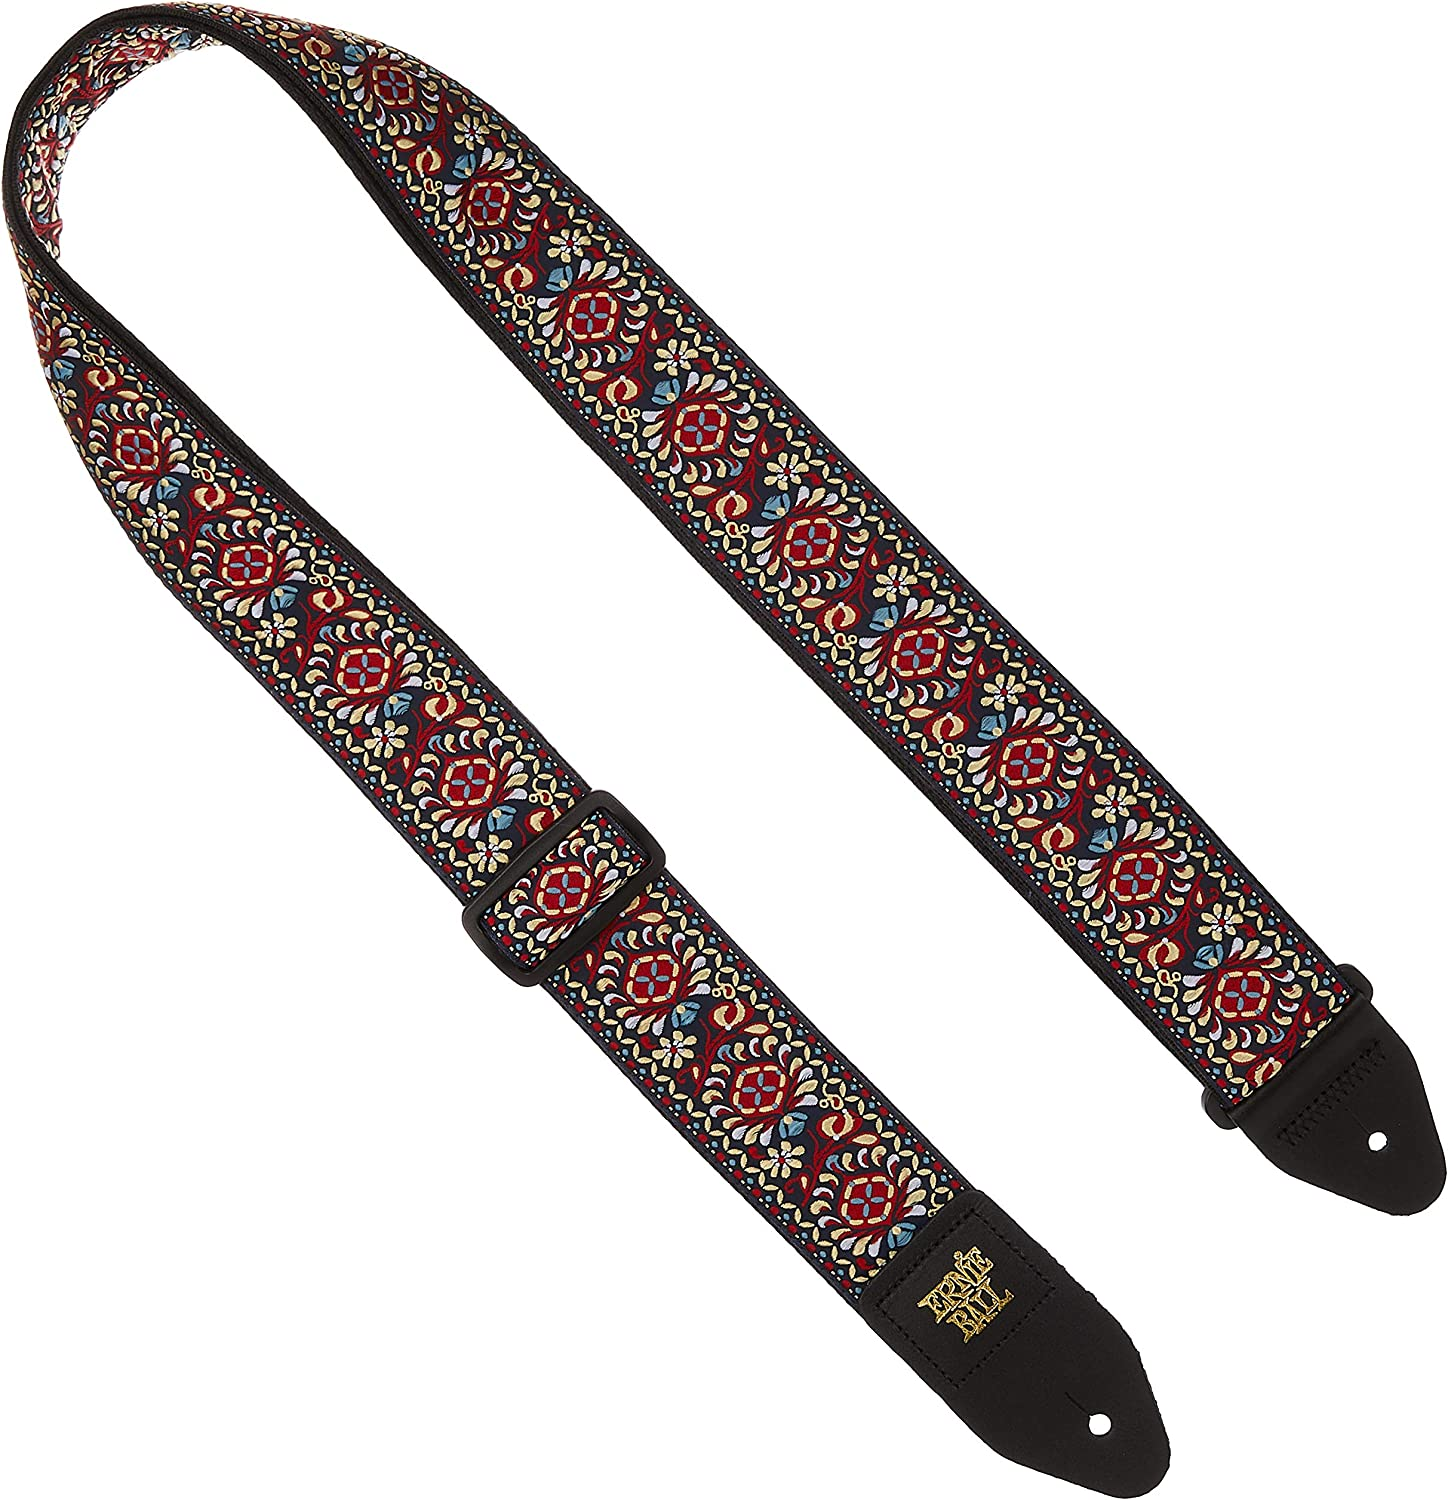 Ernie Ball 4668 Winter Rose Jacquard Strap